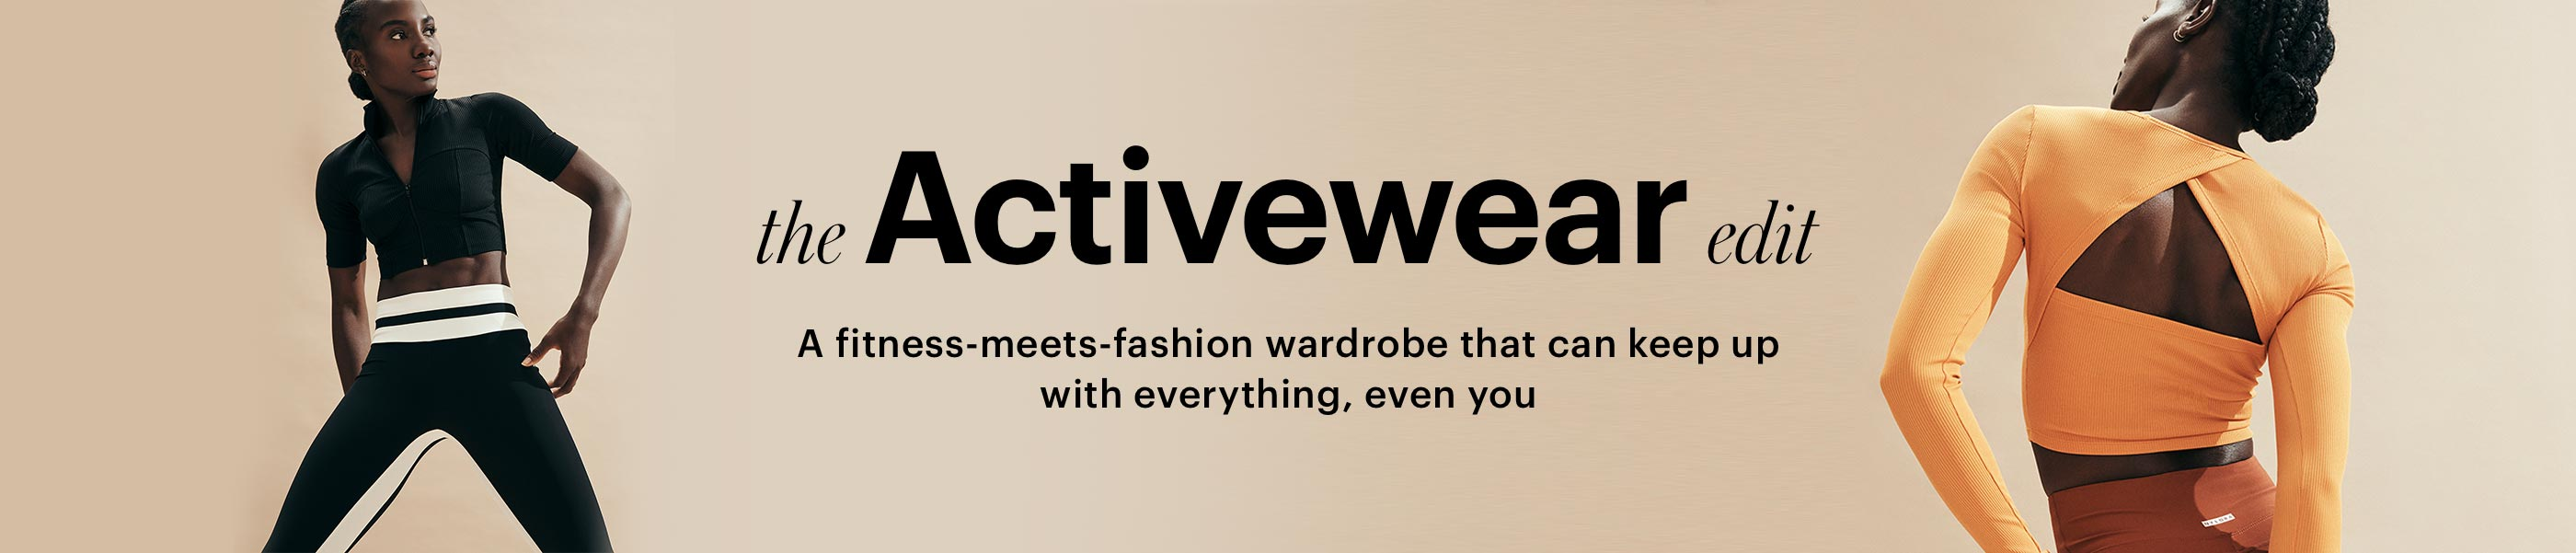 """The Activewear Edit A fitness-meets-fashion wardrobe that can keep up with everything, even you"""